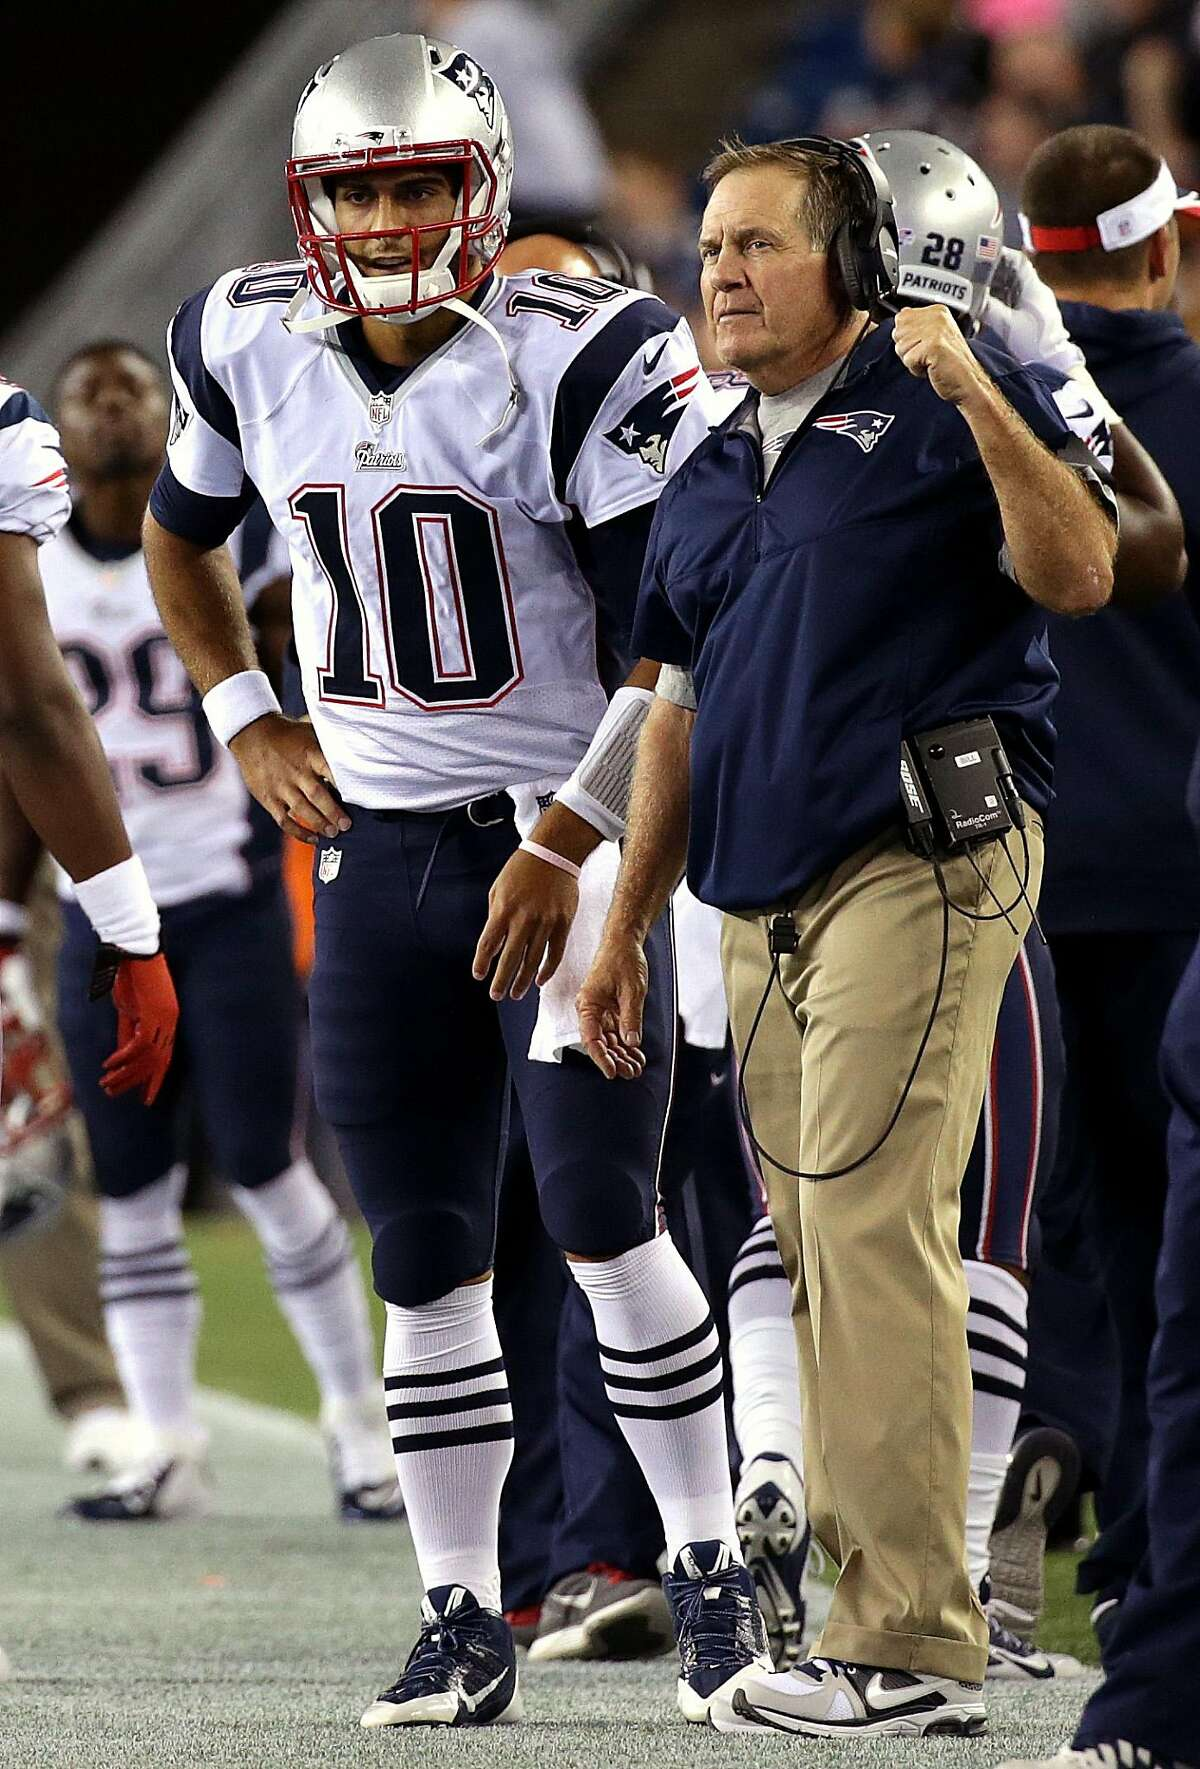 New England Patriots quarterback Jimmy Garoppolo (#10) talks with New England Patriots head coach Bill Belichick on the sidelines.